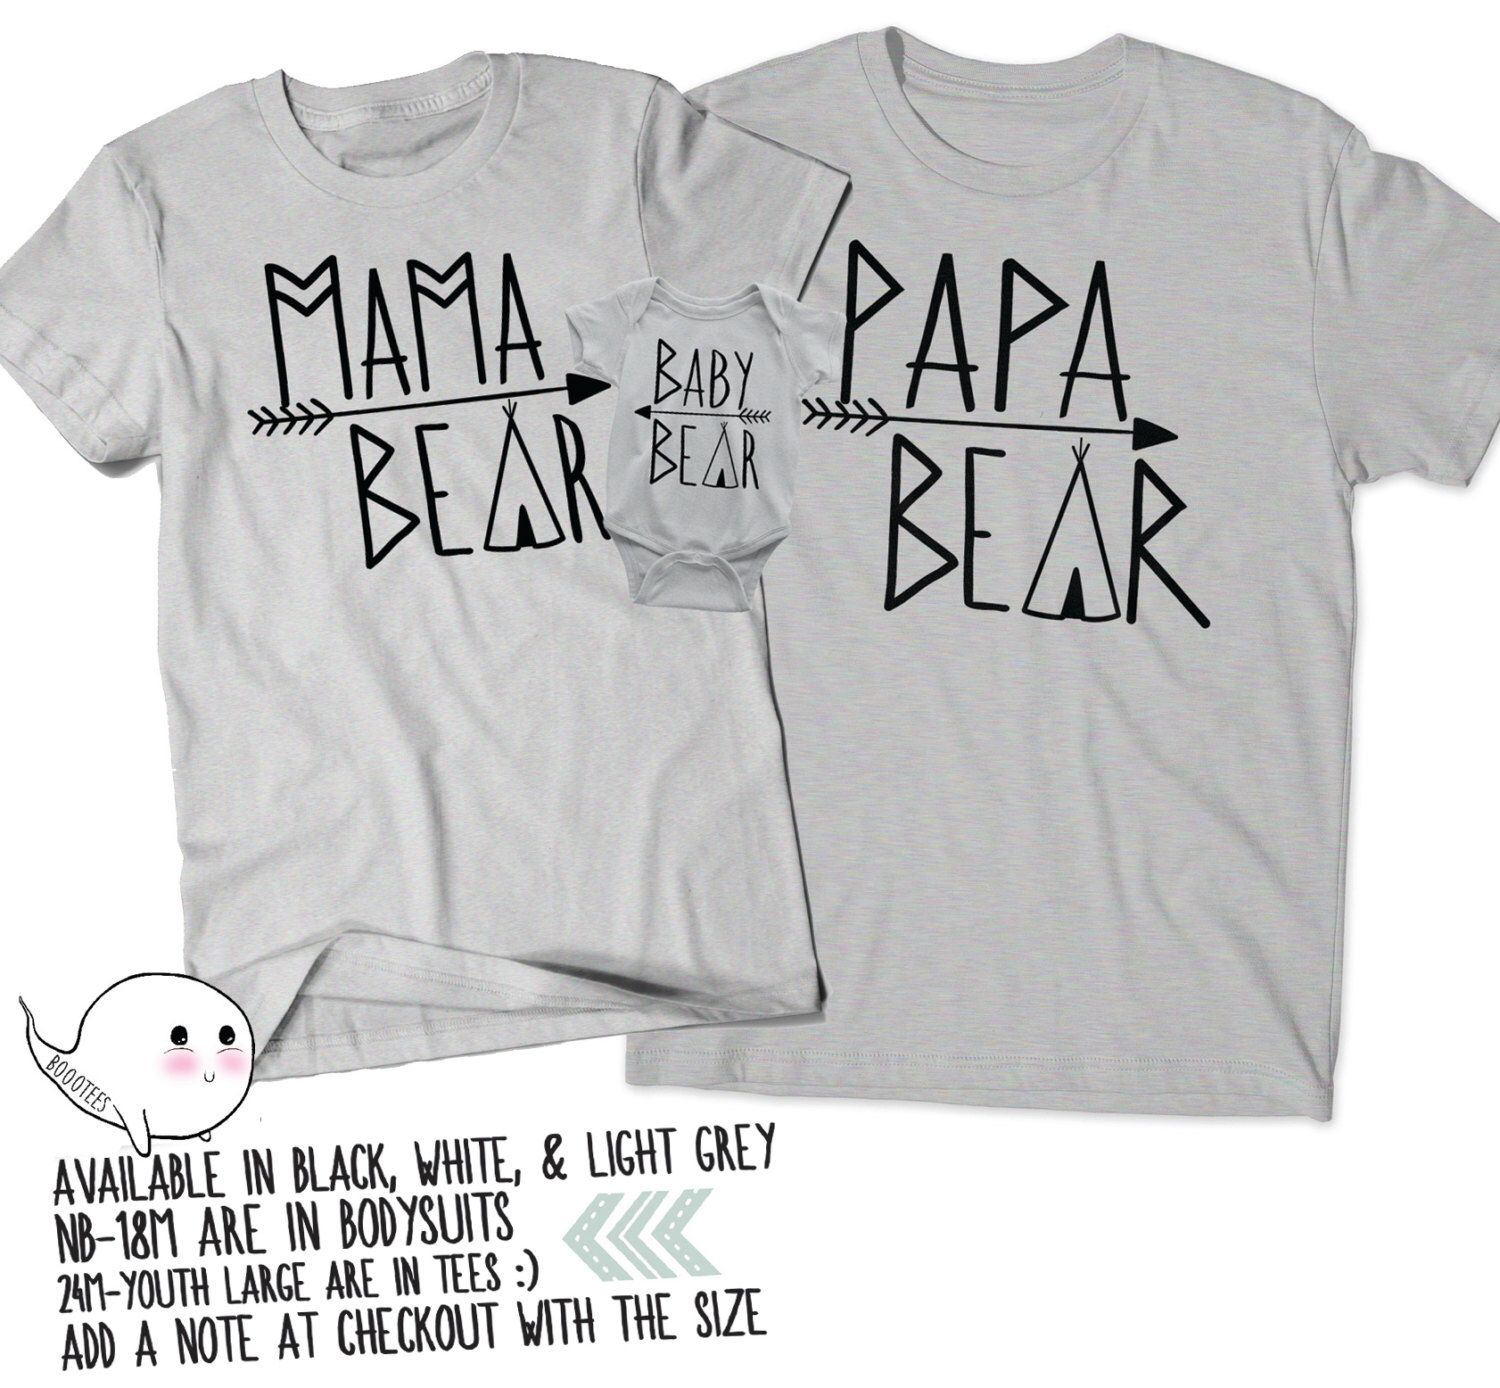 Fathers Day Gift Mommy Bear Daddy Bear Baby Bear Matching Shirts T-shirt Pregnancy Announcement Tee Dad Momma Mama Mom Present Shower Family iTnpiVu5C